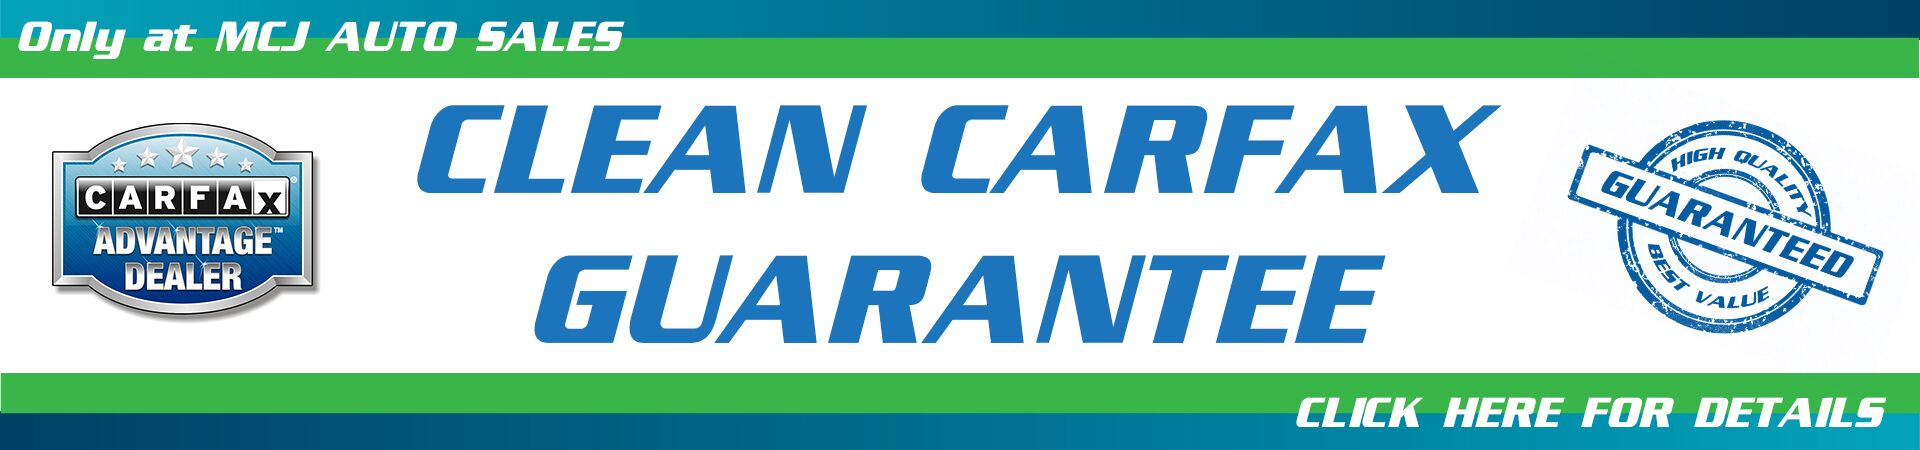 Clean Carfax Guarantee - MCJ Auto Sales